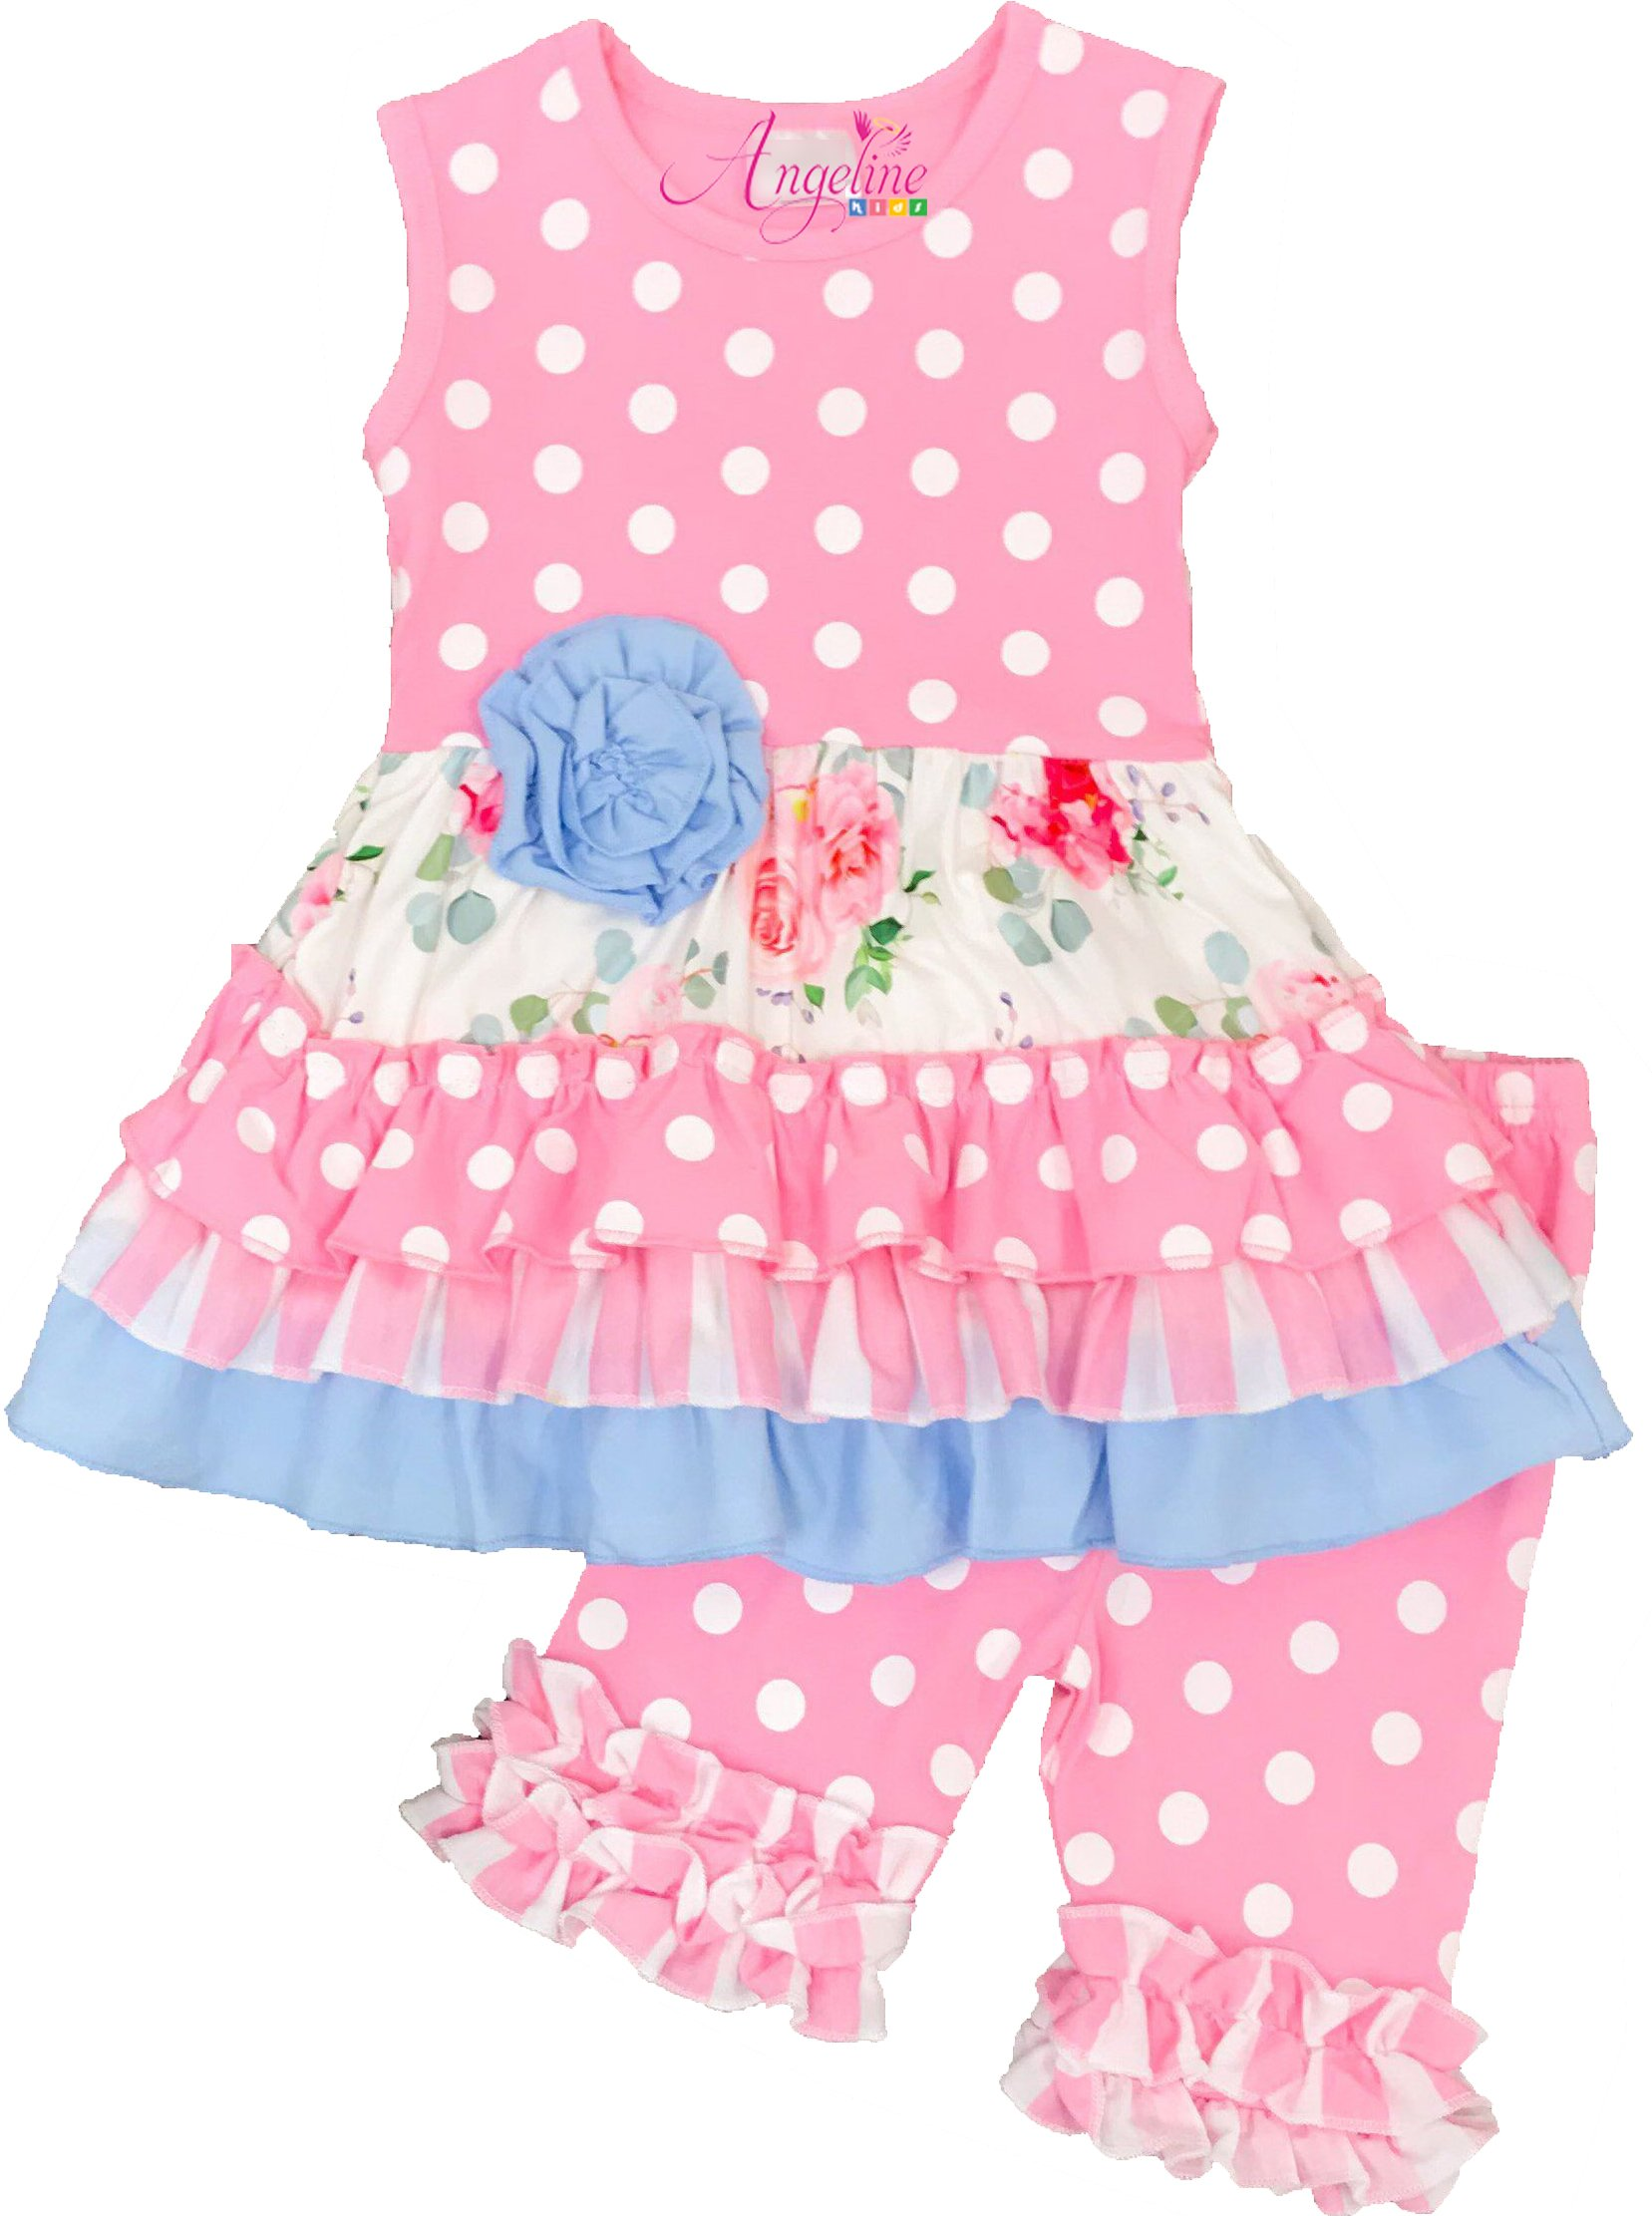 Boutique Clothing Girls Pretty in Pink Polka Dots Tiered Short Set 4T/L